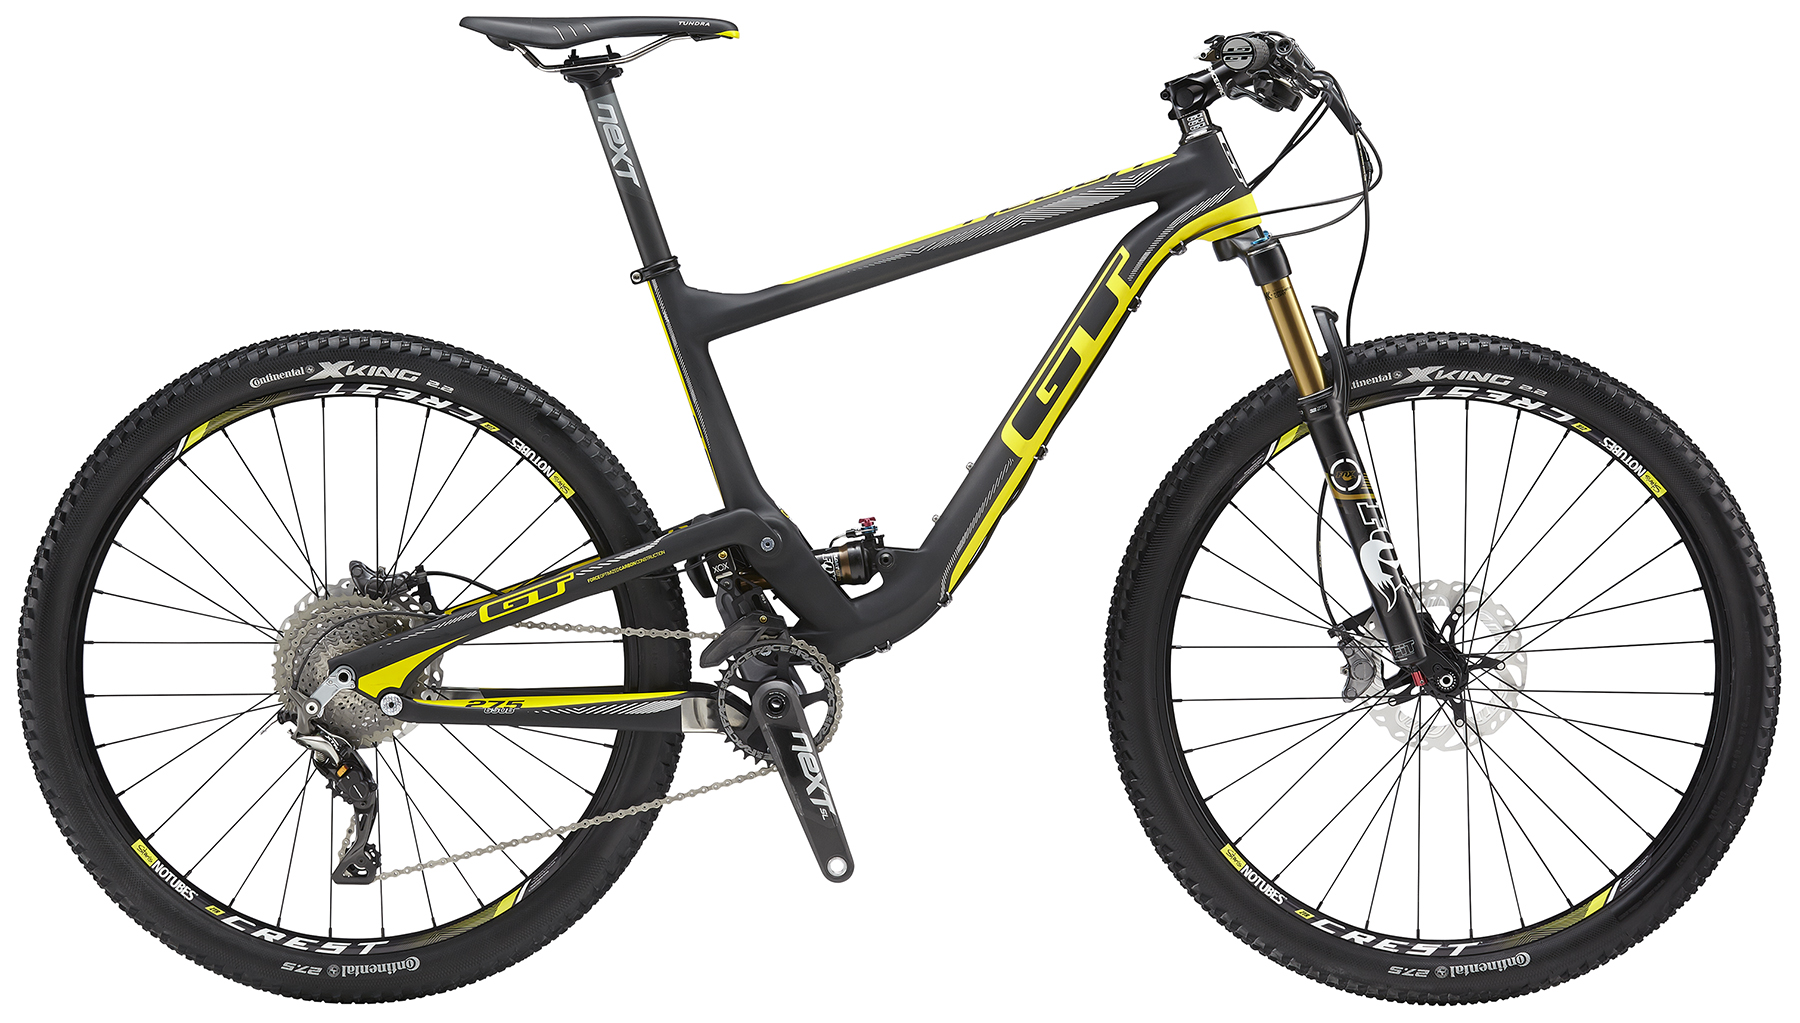 Photo courtesy of GT Bicycles.